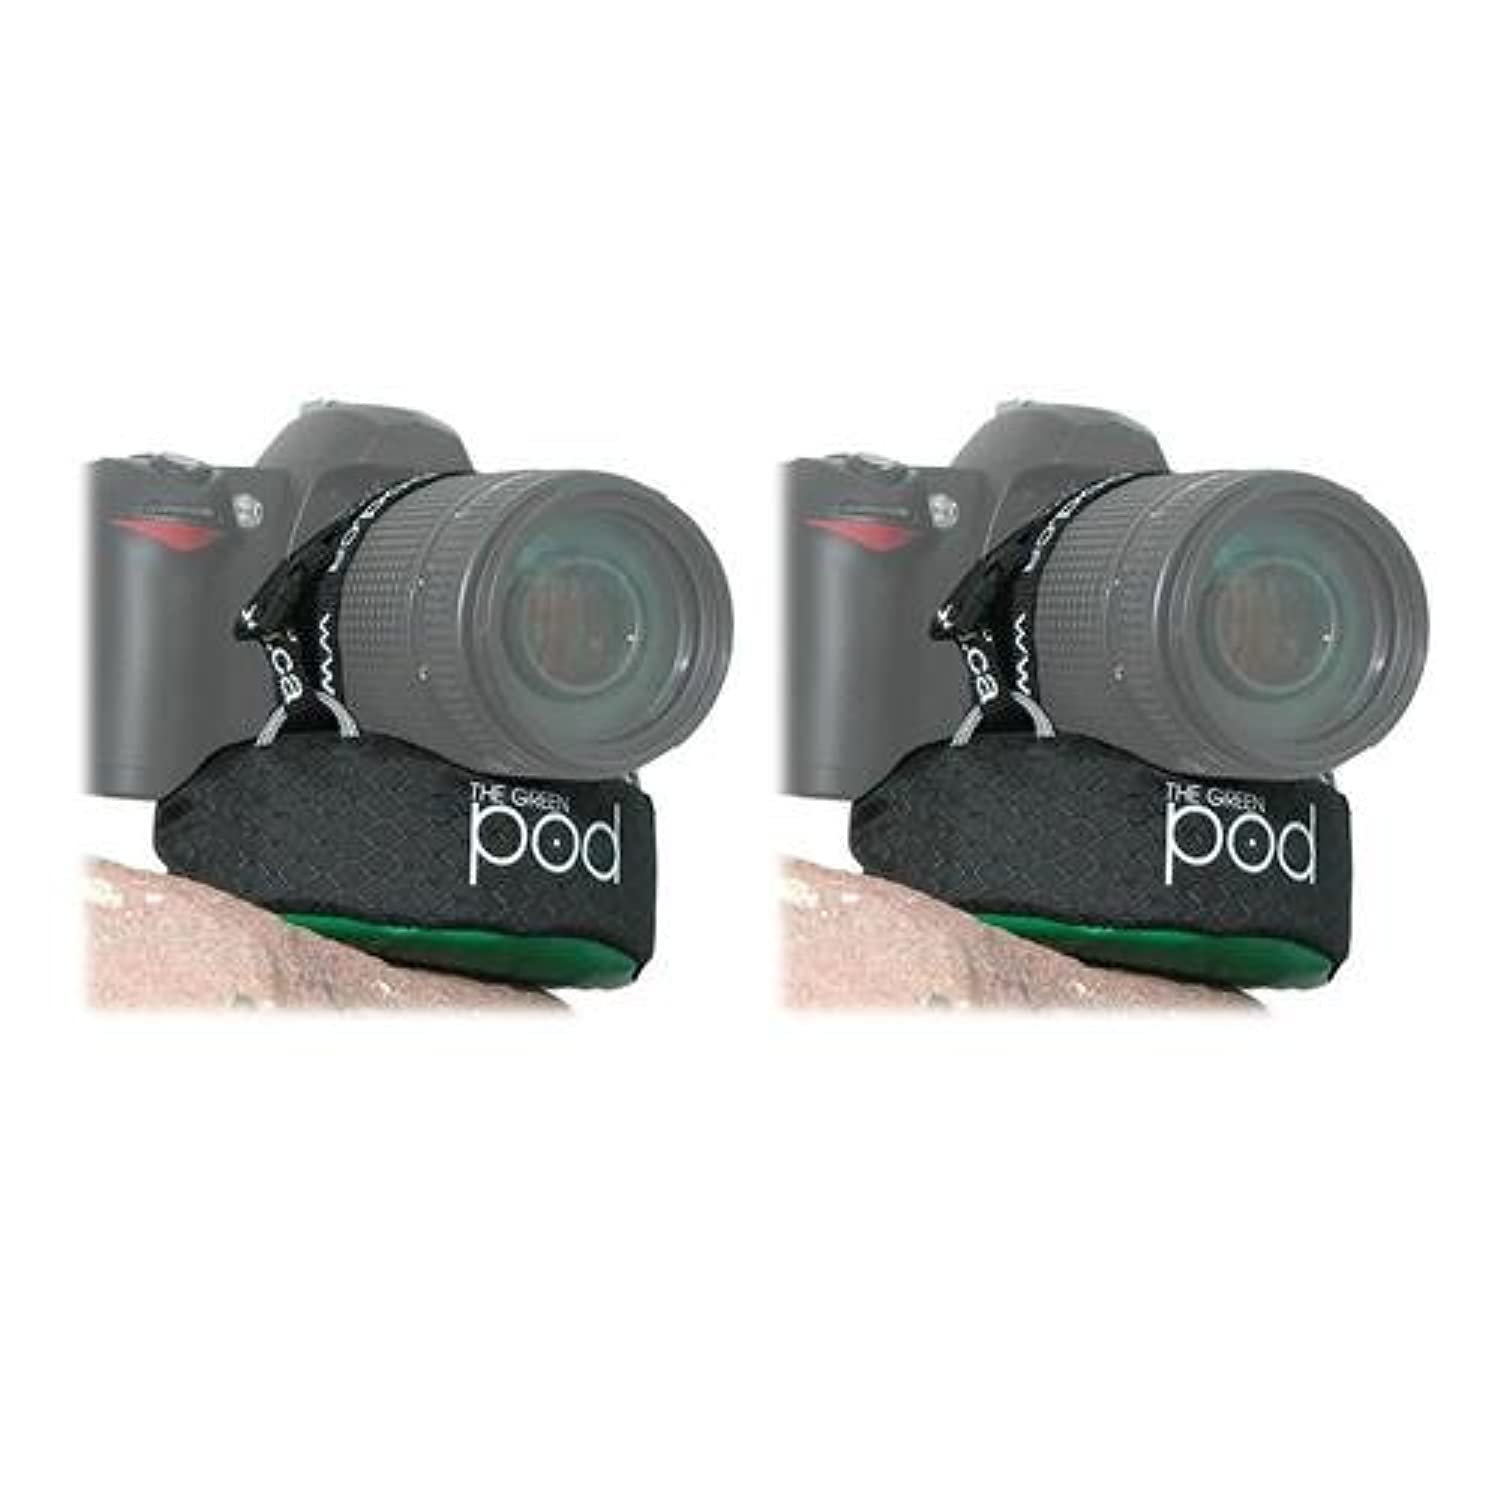 The POD 2 Pack Green Camera Platform for DSLRs with Zoom Lenses